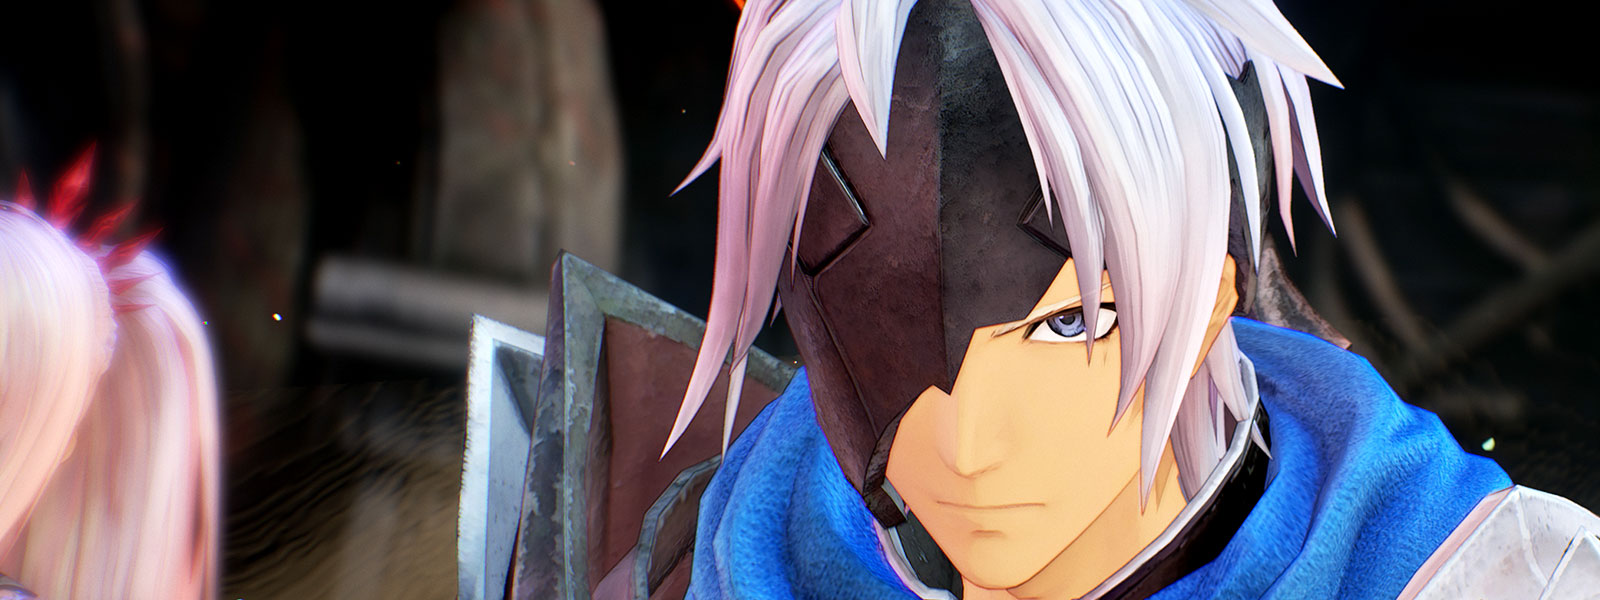 Male character with white hair and a black mask covering his right eye and half of his face with blue clothing and armour